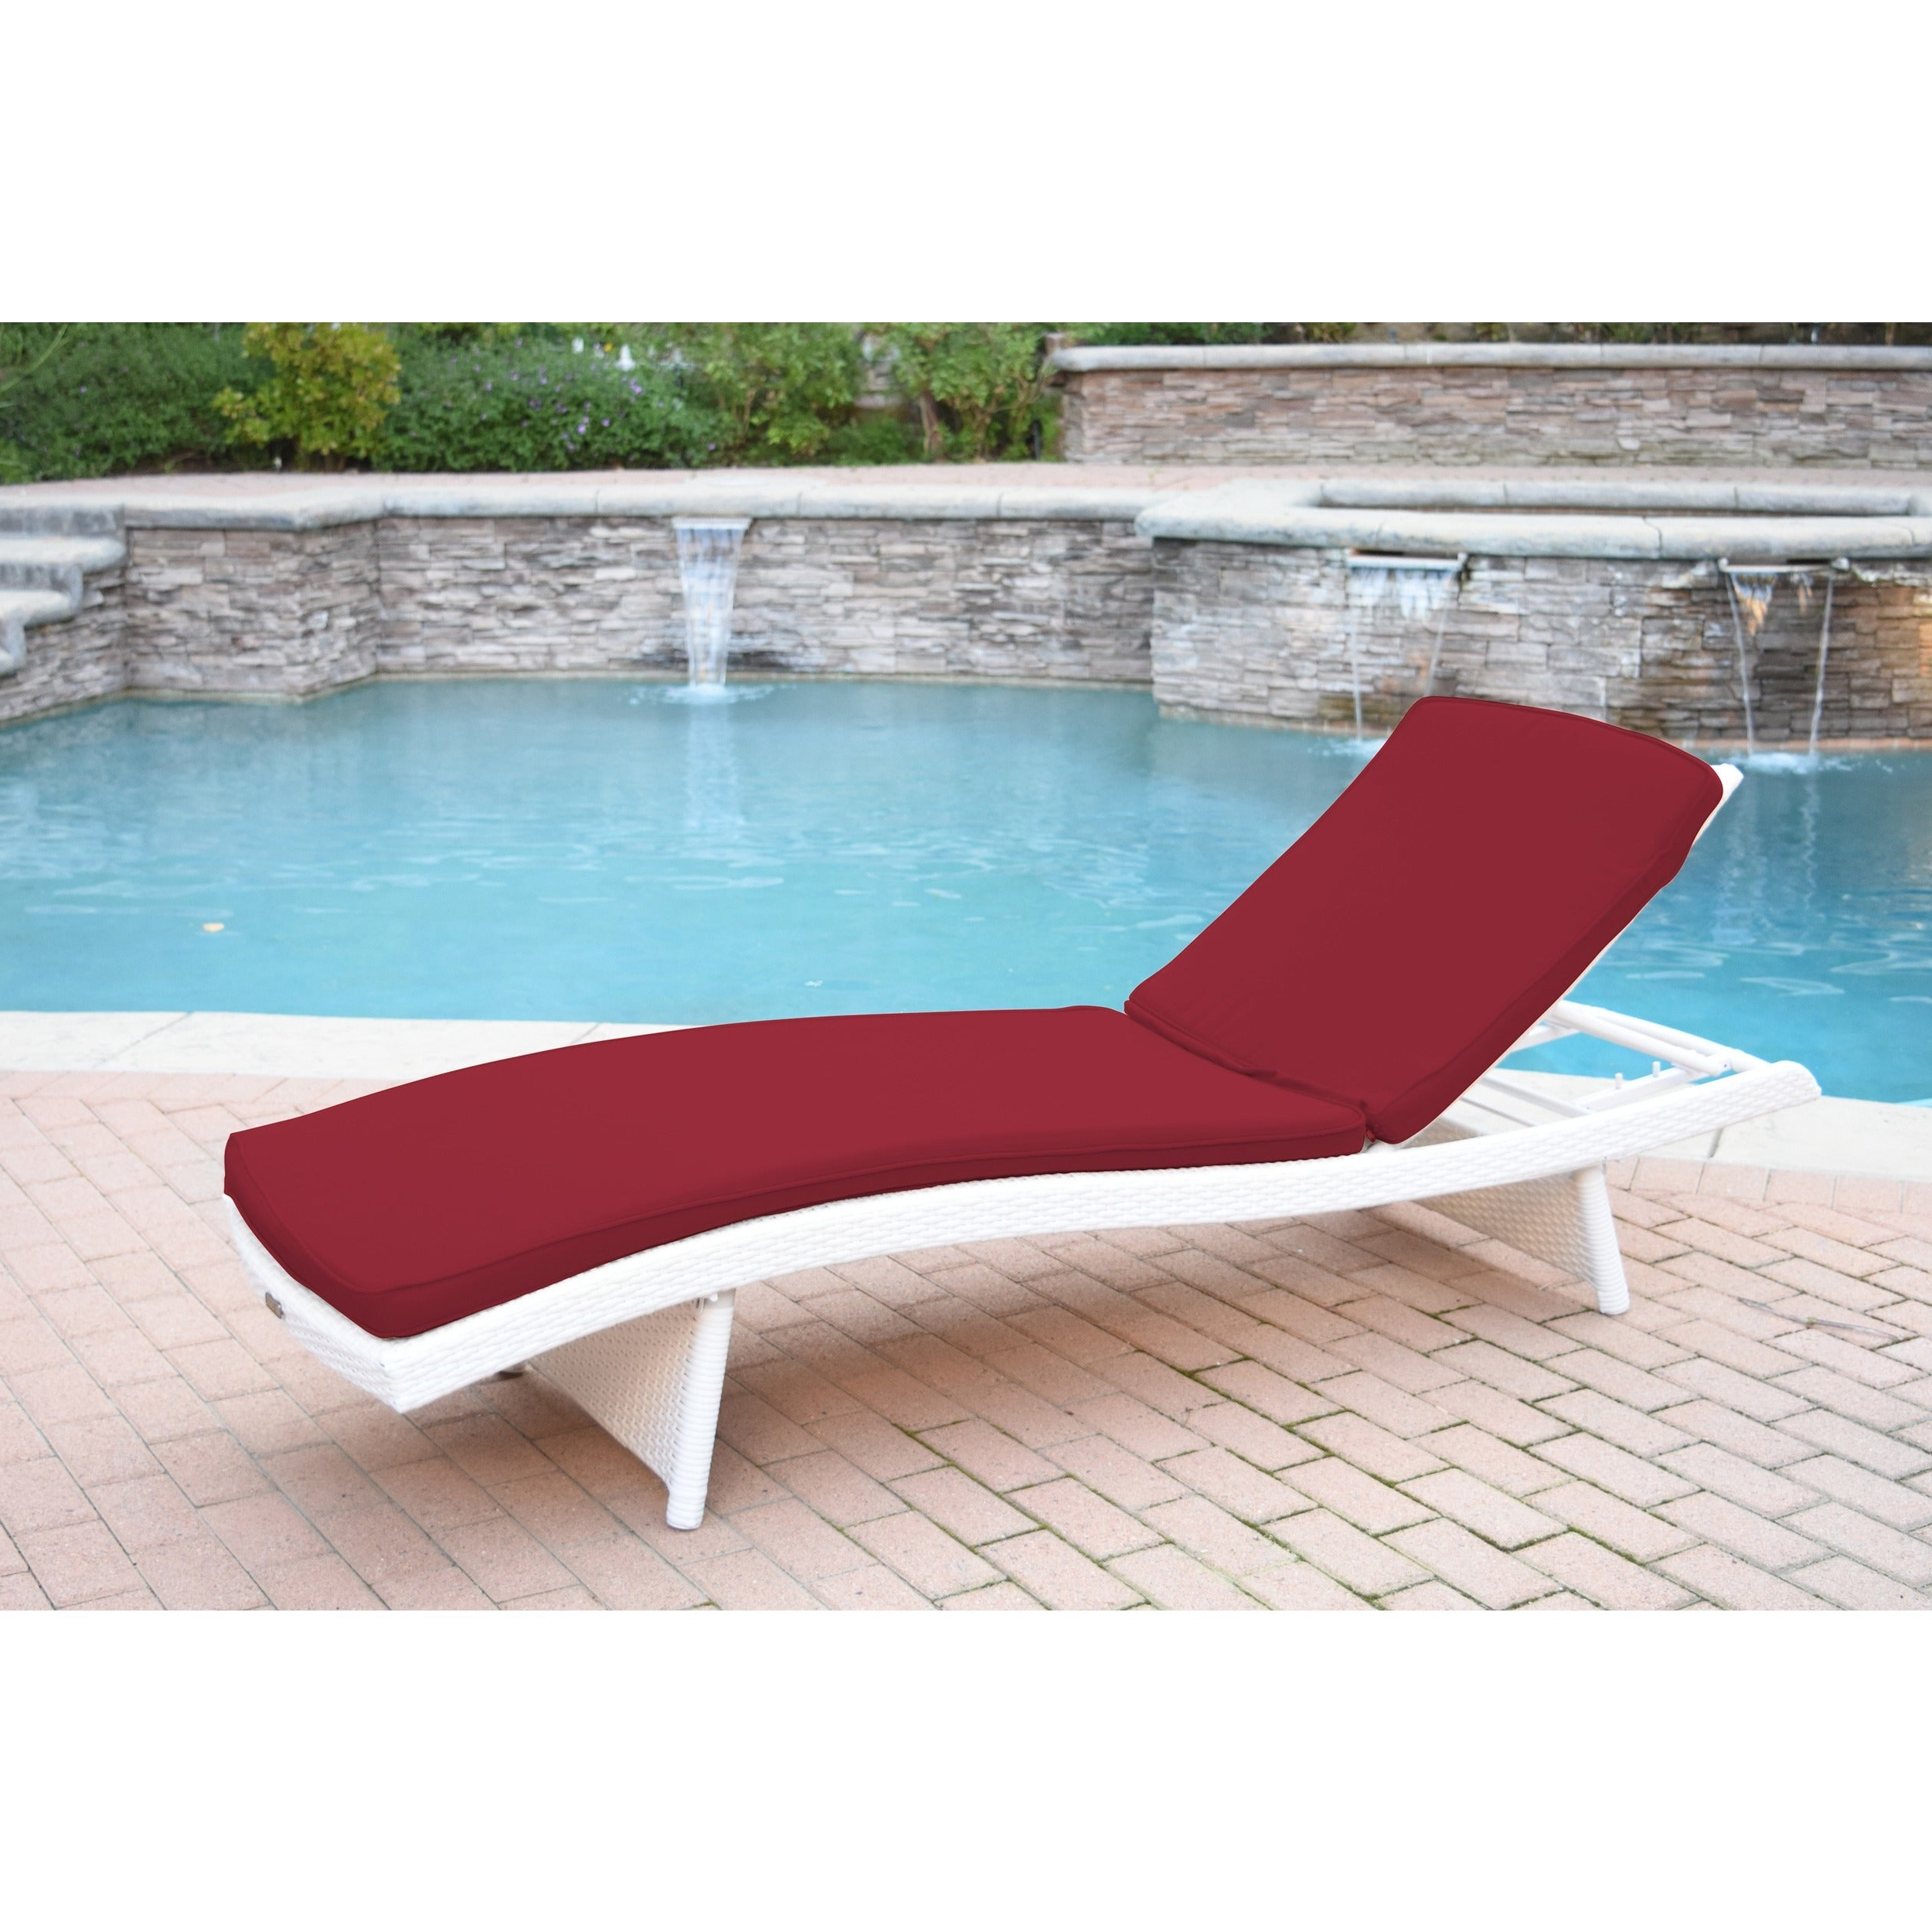 Most Recent White Wicker Adjustable Chaise Loungers With Cushions Regarding White Wicker Adjustable Chaise Lounger With Cushions (View 11 of 25)